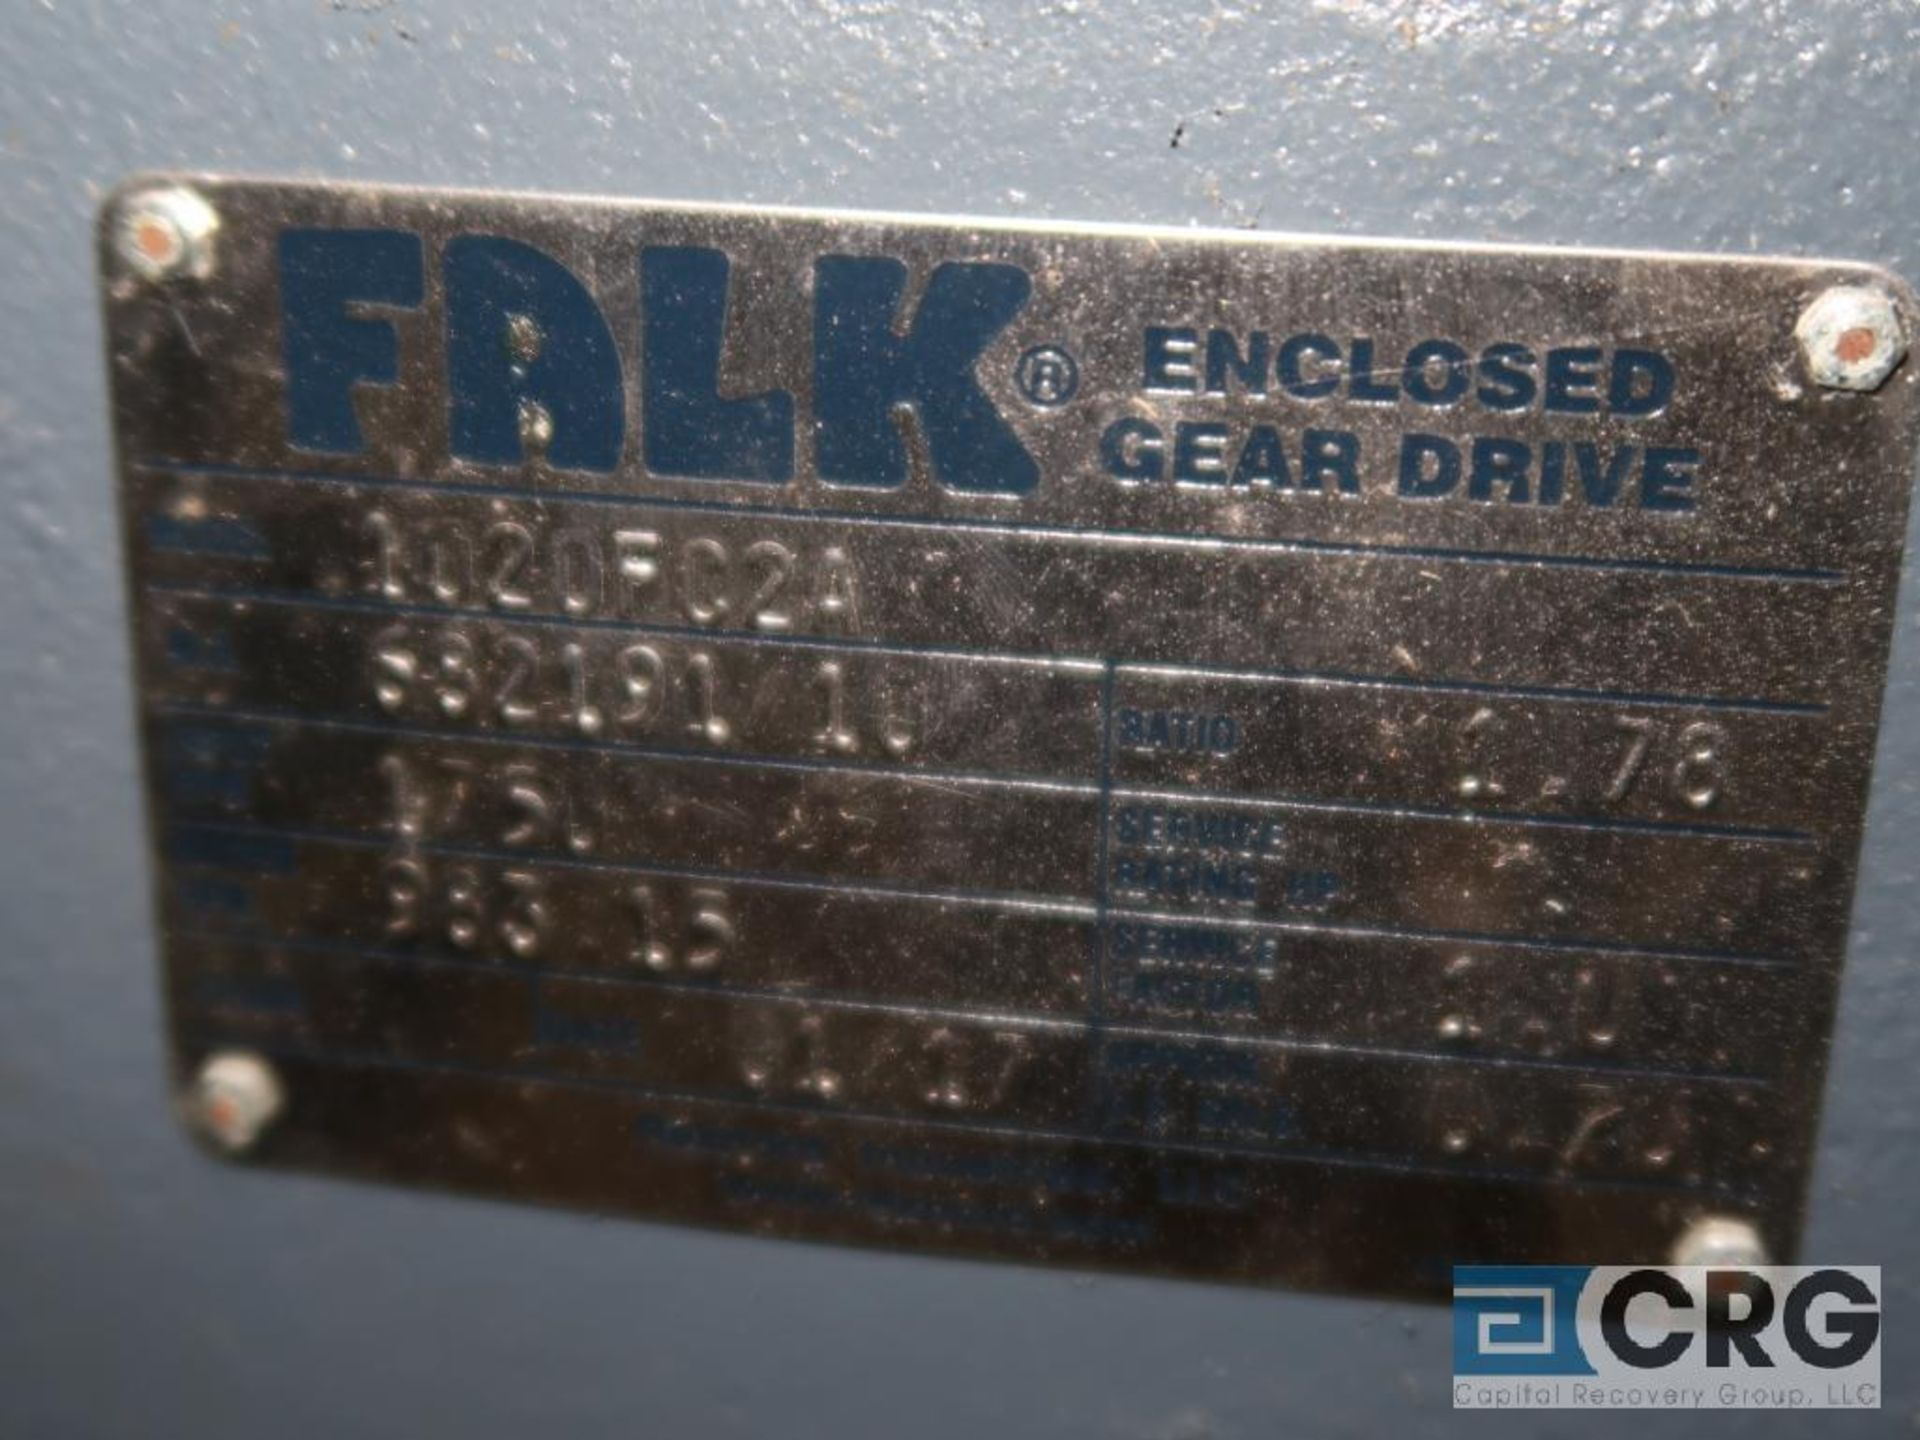 Falk 1020 FC2A gear drive, ratio 1.78, 983.15 RPM, s/n 68219110 (Finish Building) - Image 2 of 2